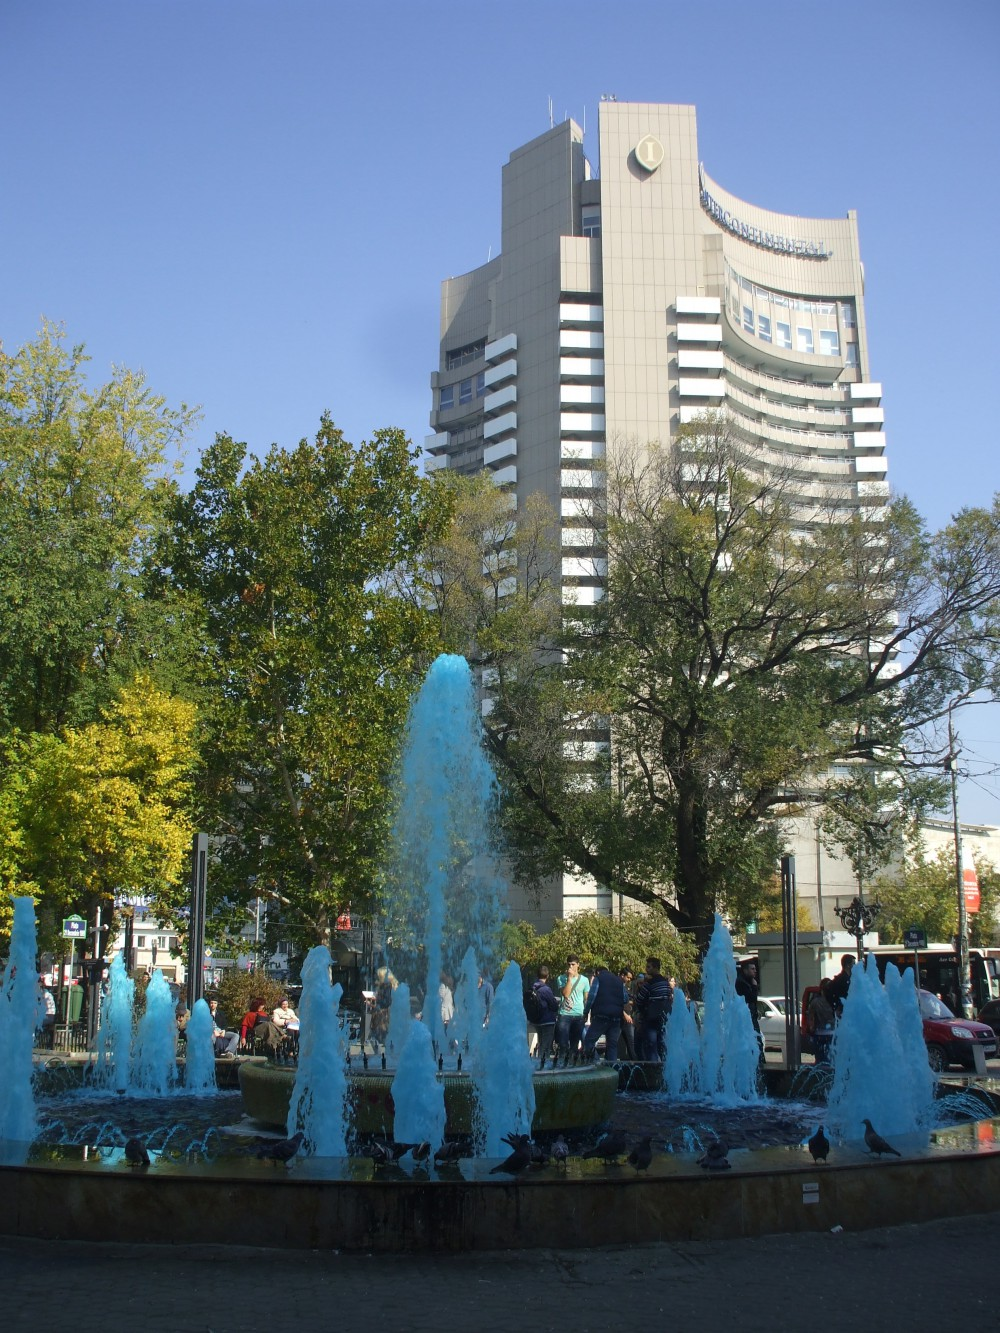 Intercontinental Hotel & University Fountain in Bucharest